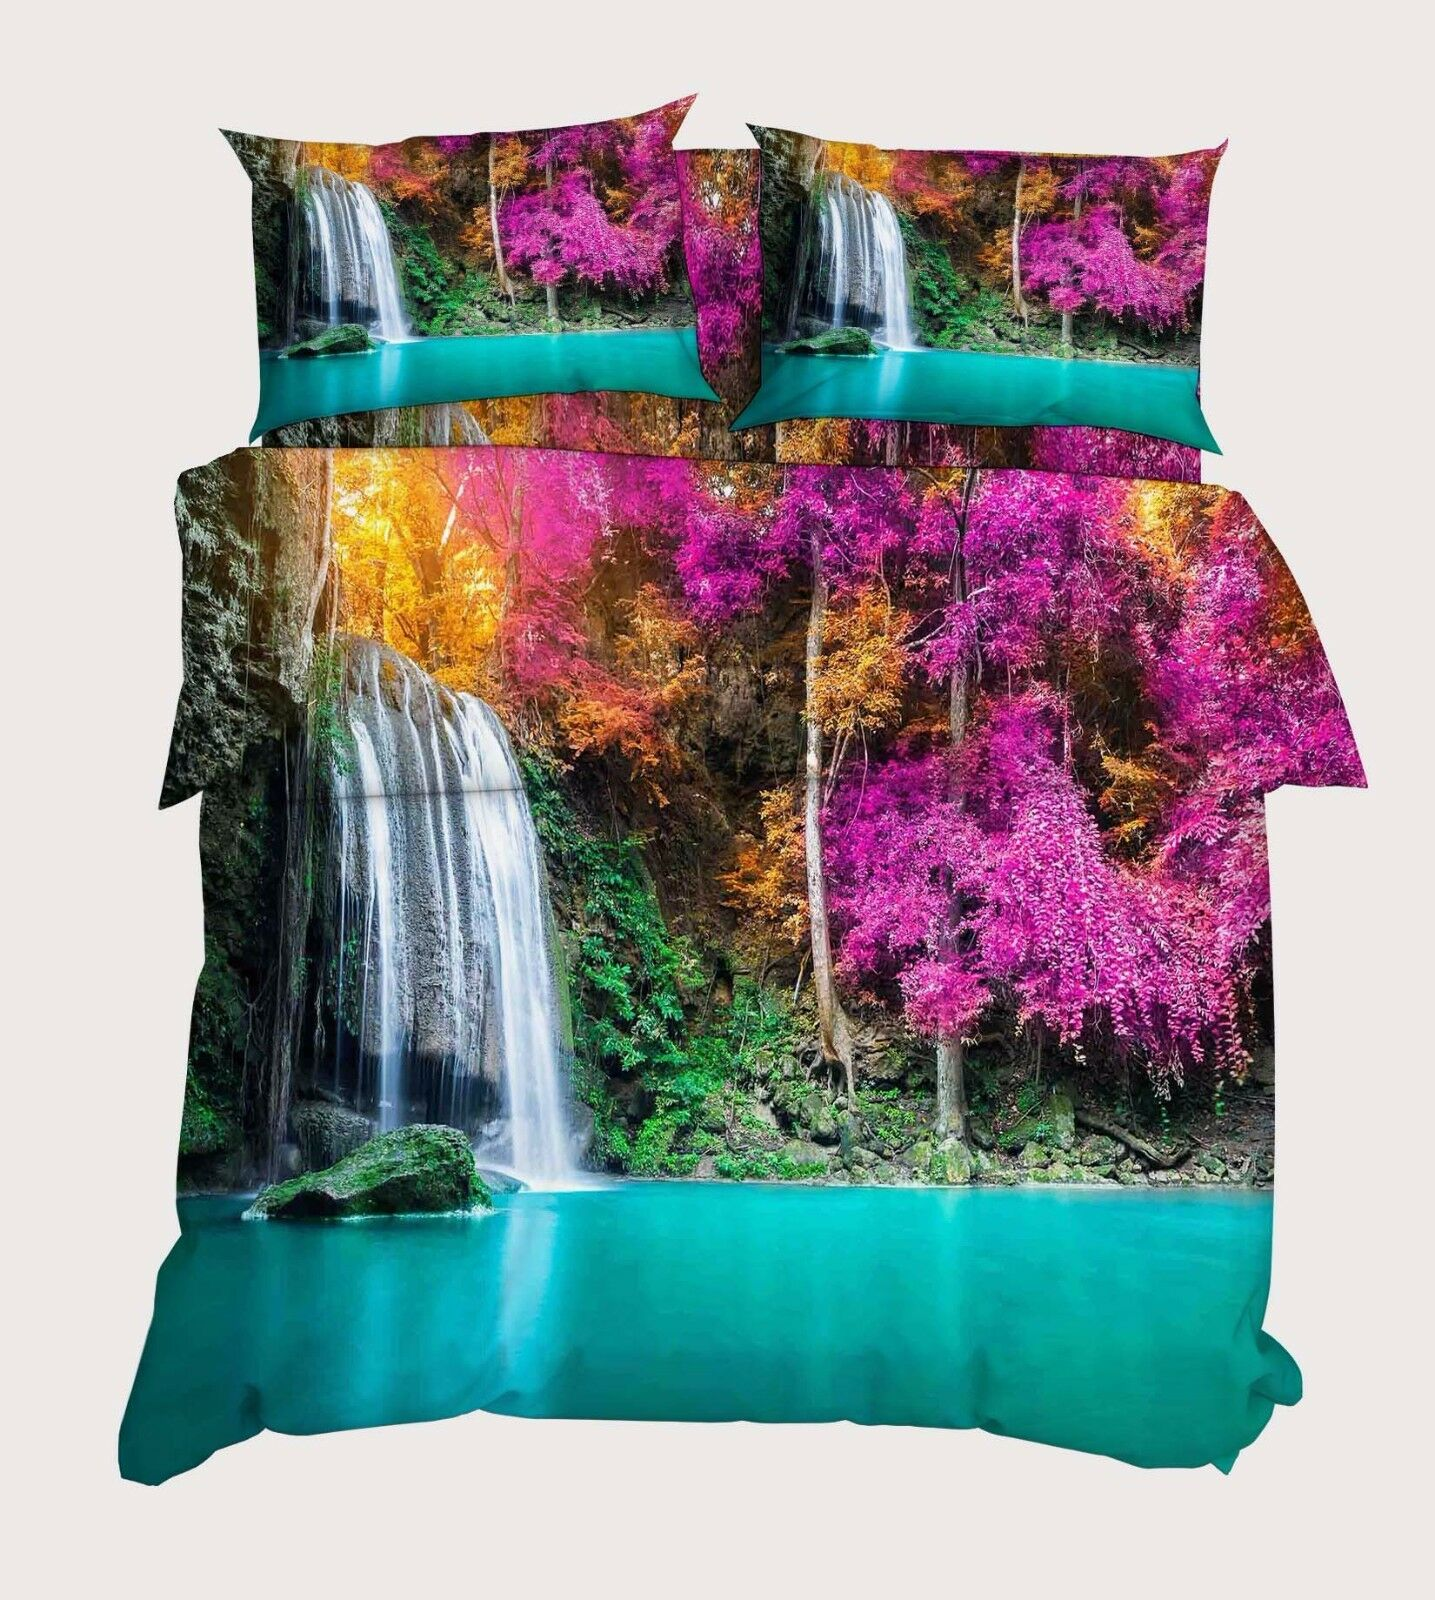 3D Bule Pool Tree 896 896 896 Bed Pillowcases Quilt Duvet Cover Set Single Queen UK Kyra 7861a4